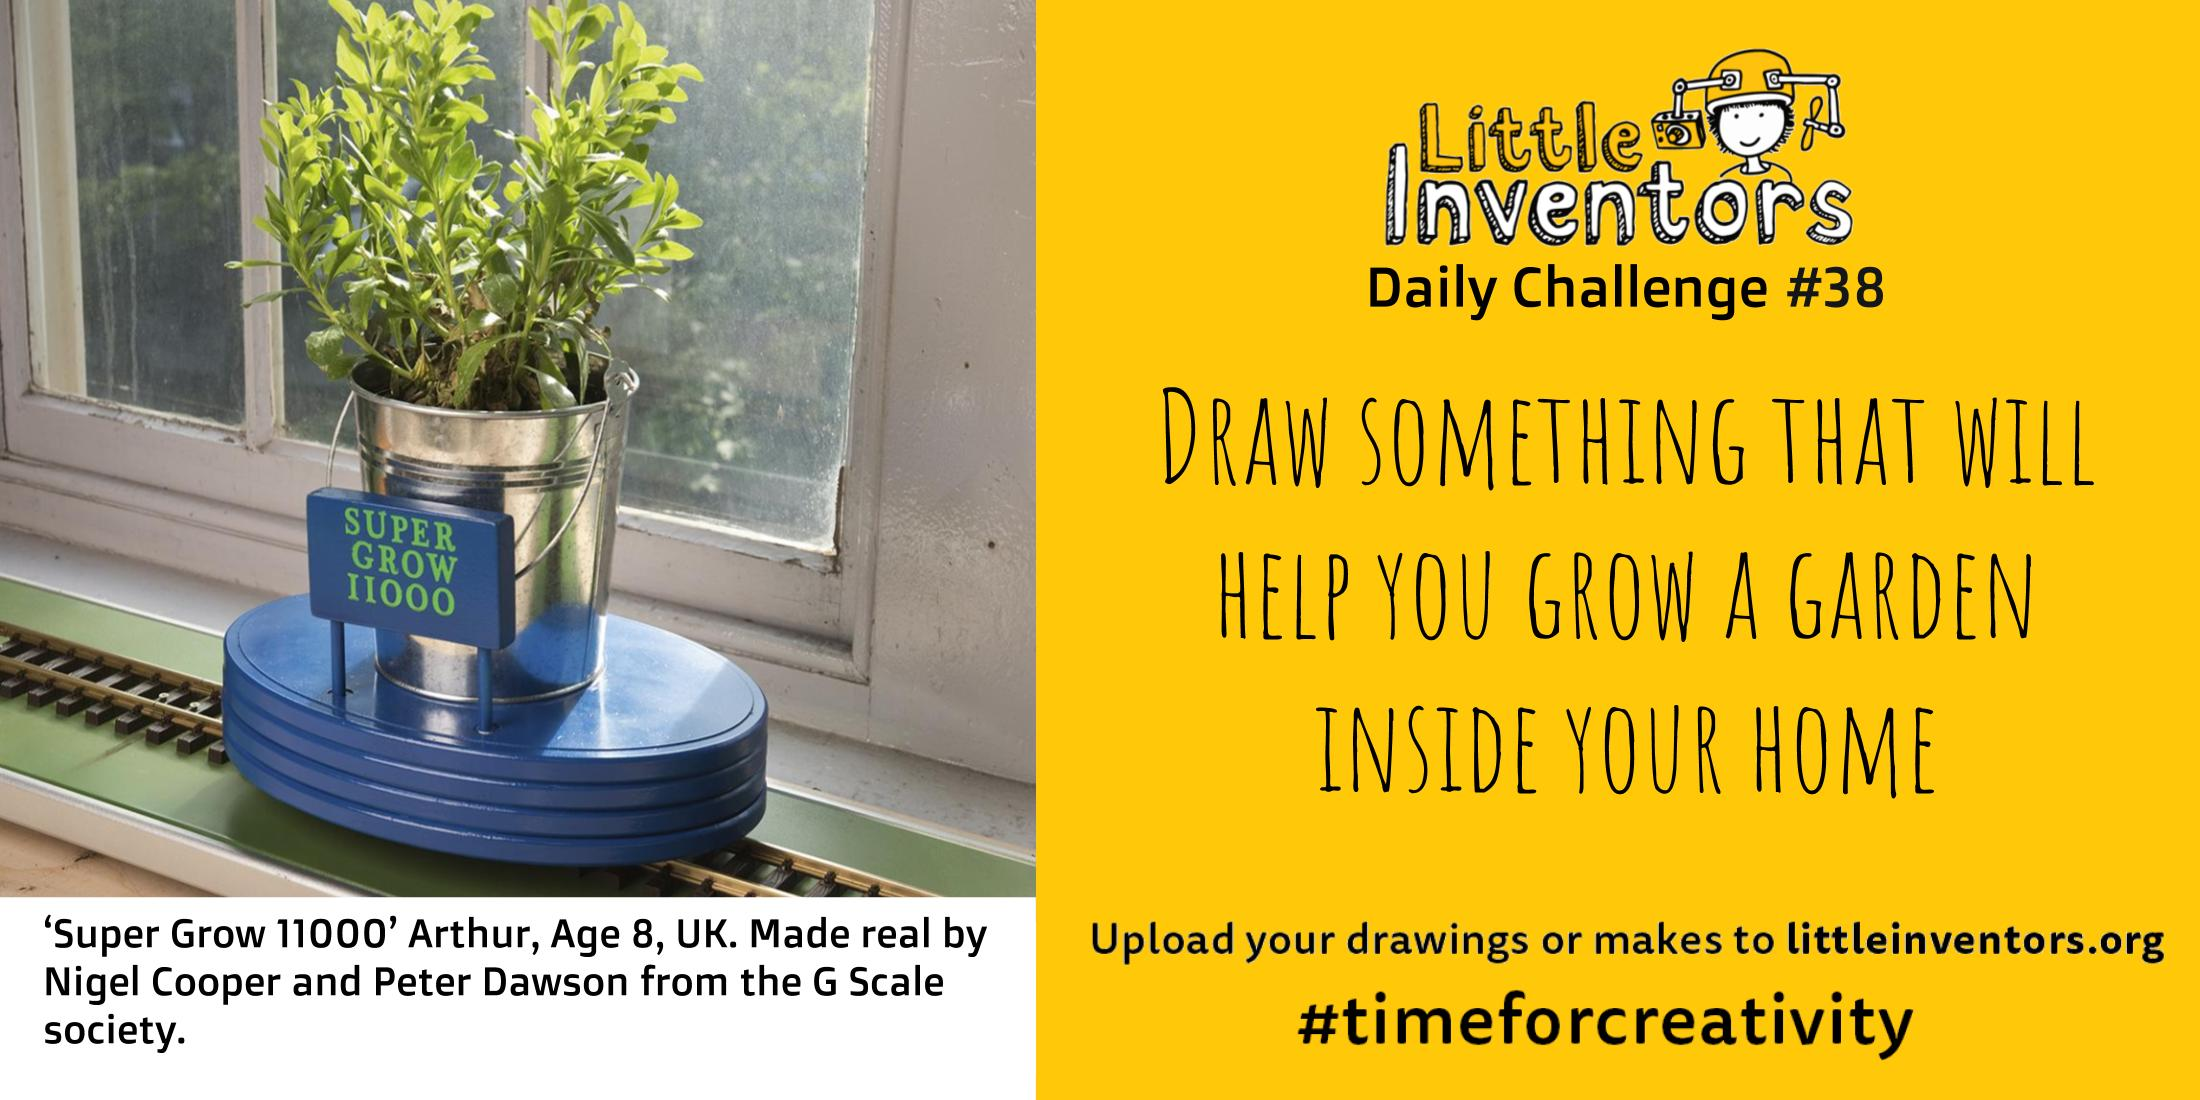 Little Inventors Challenge 38 : Draw something that will help you grow a garden inside your home